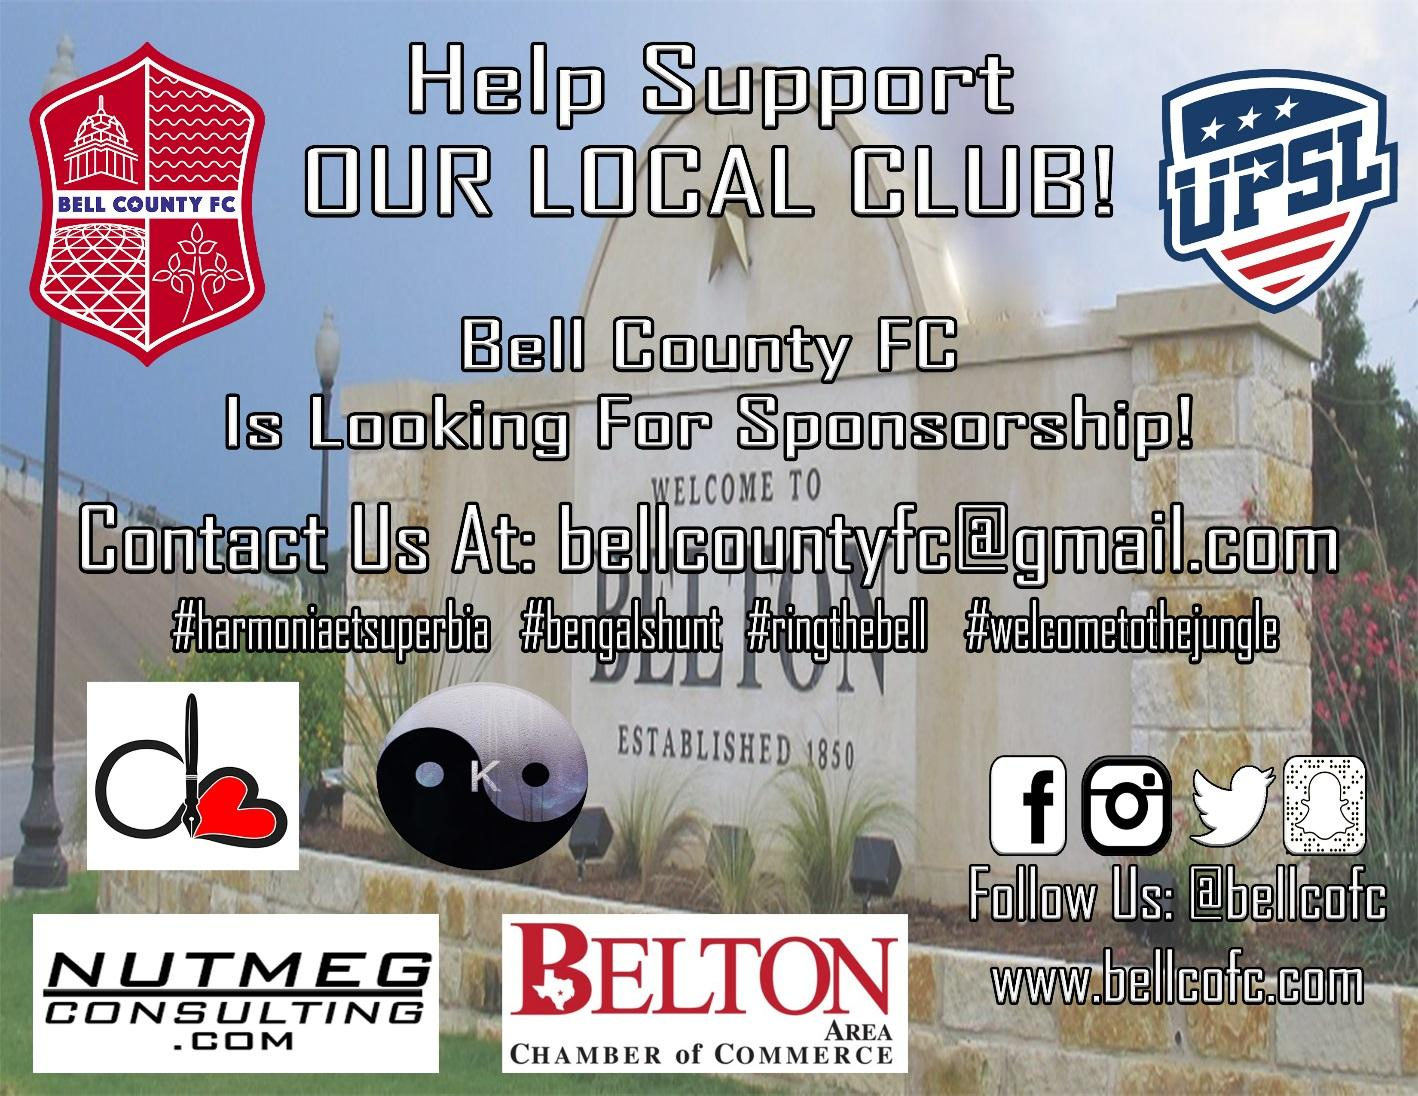 Bell County FC made their announcement on twitter, as well as other social media platforms and have made it easy to follow their path toward the 2019 Fall Season.